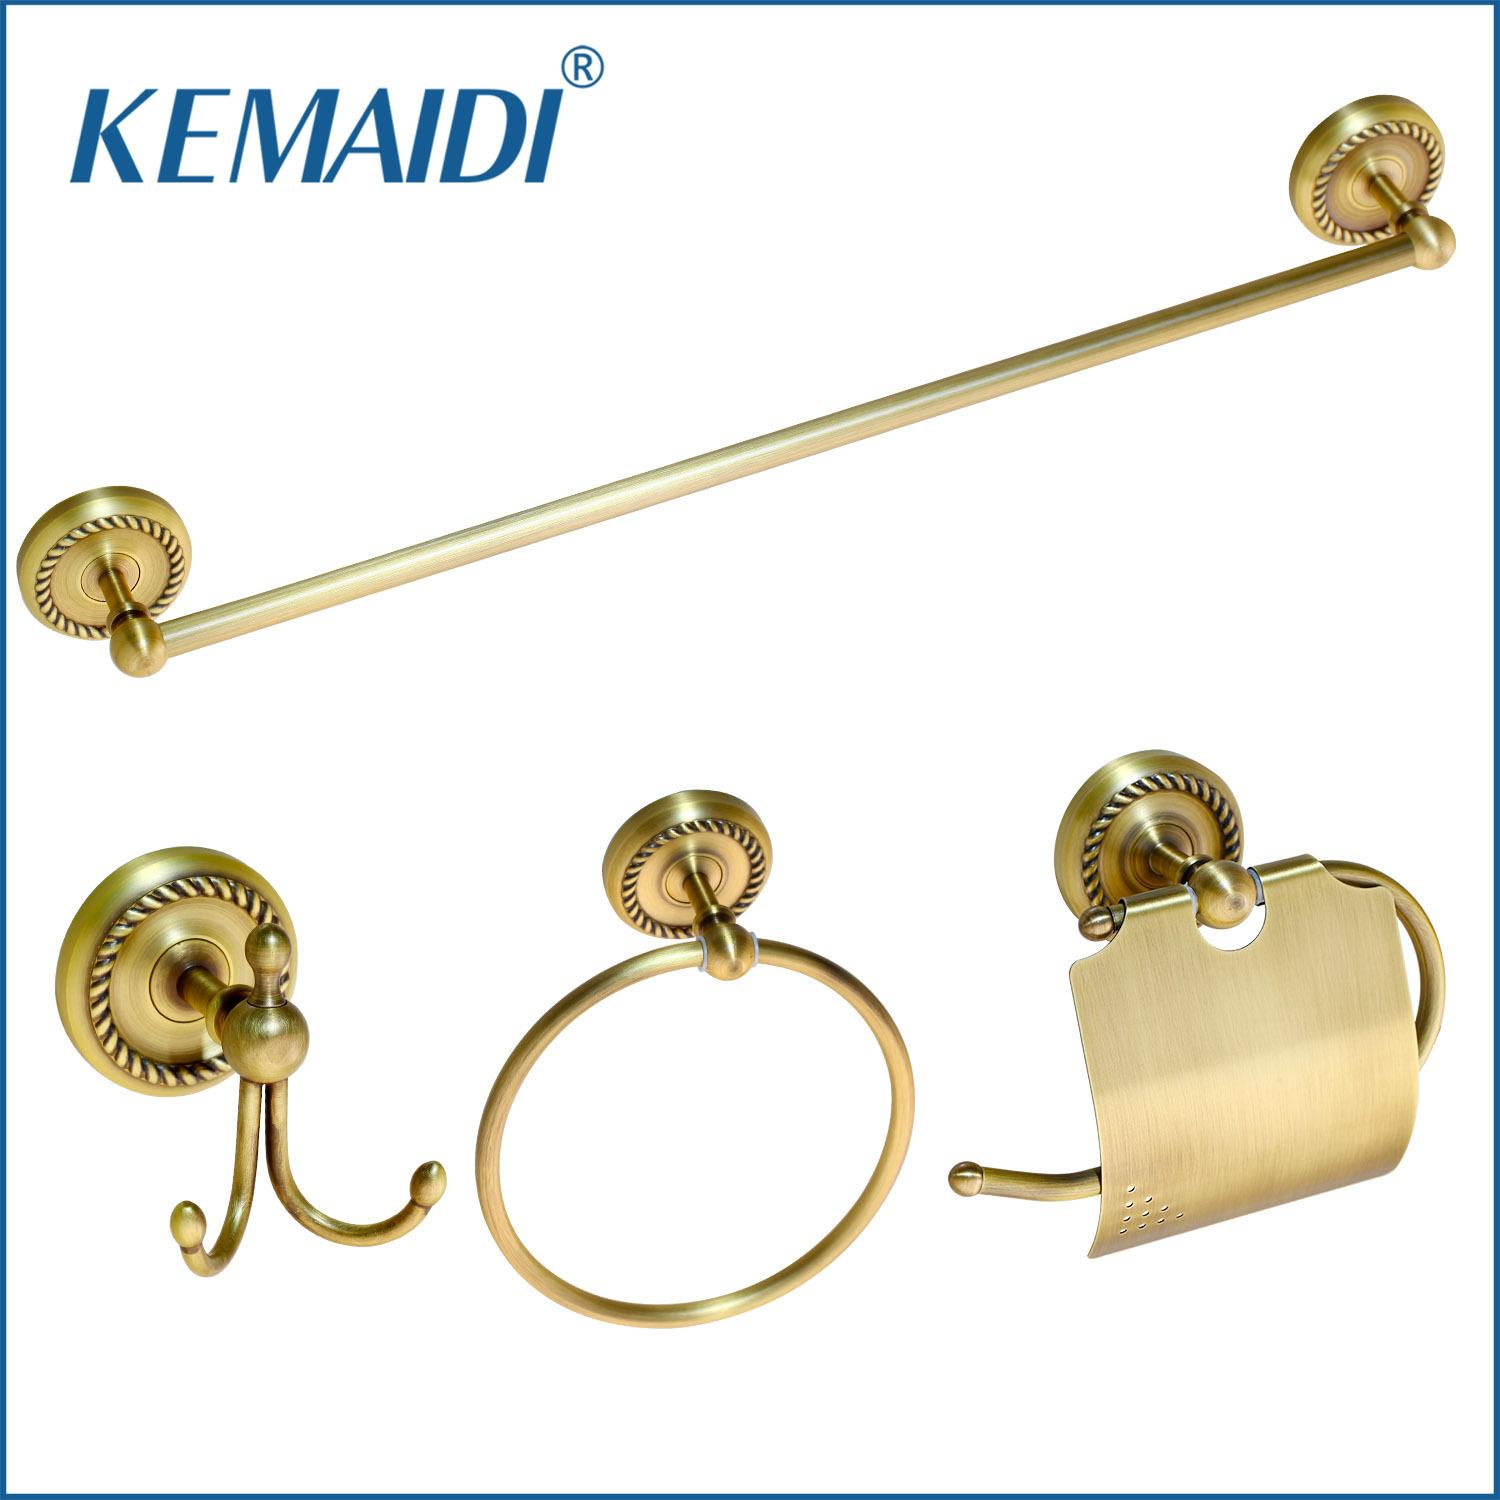 2019 Kemaidi Antique Brass Bathroom Accessories Robe Hookpaper